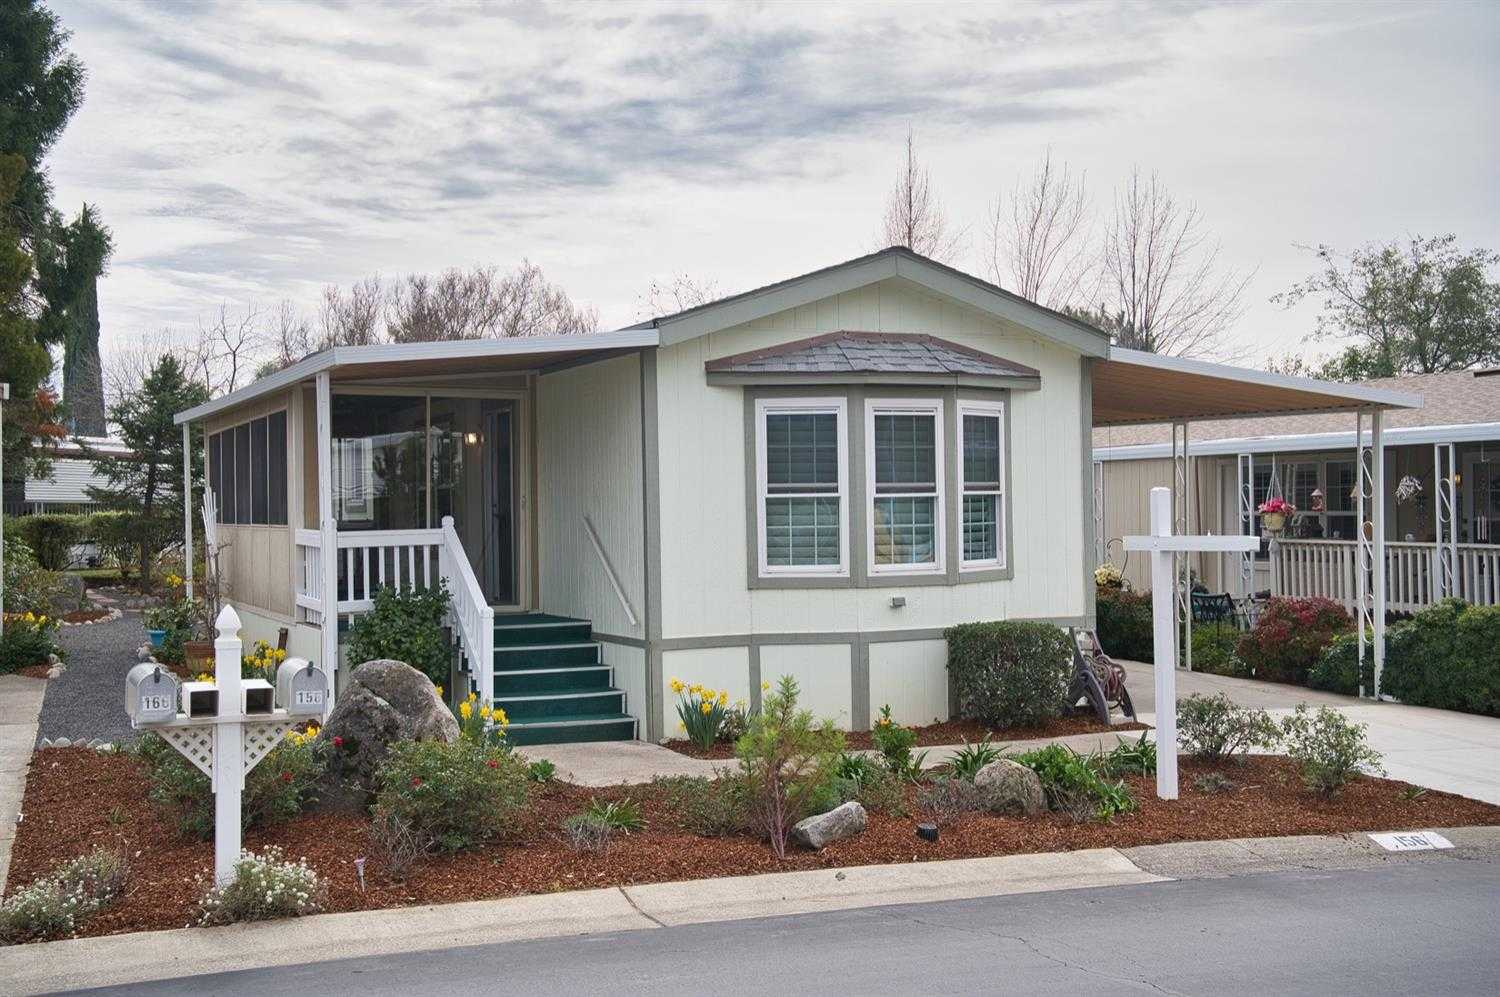 $94,500 - 2Br/2Ba -  for Sale in Folsom